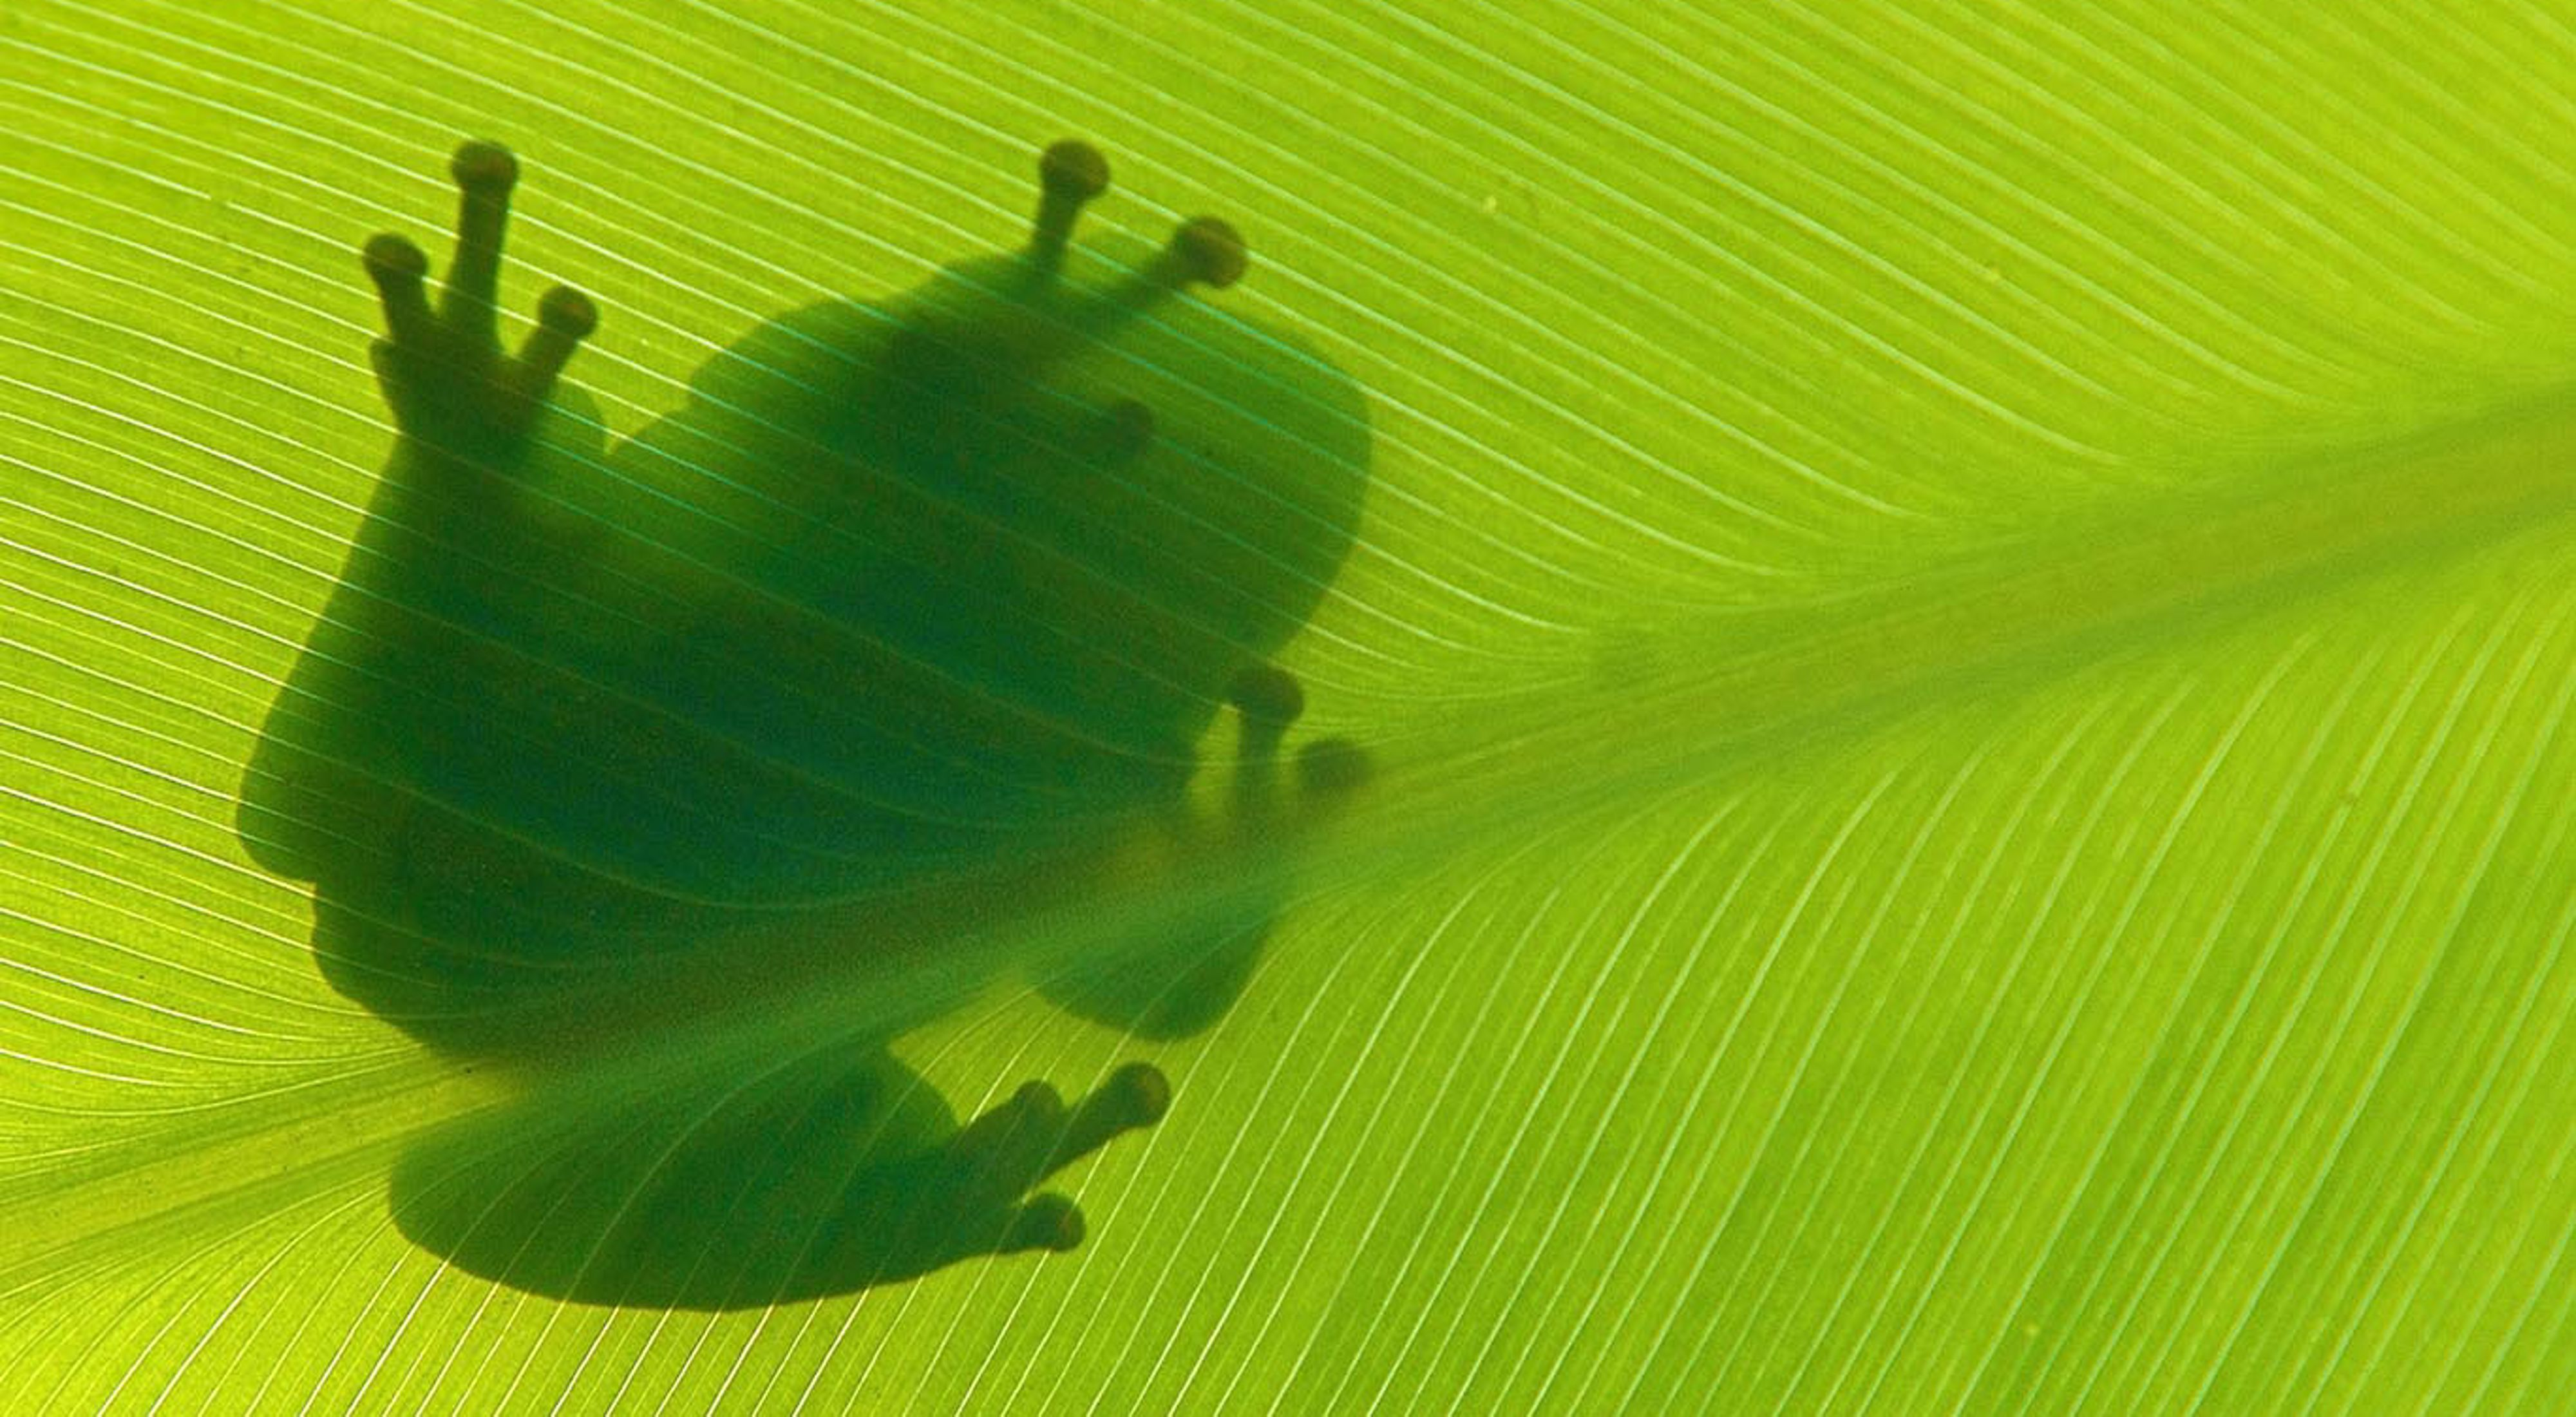 Silhouette of a green tree frog sitting on top of a leaf.